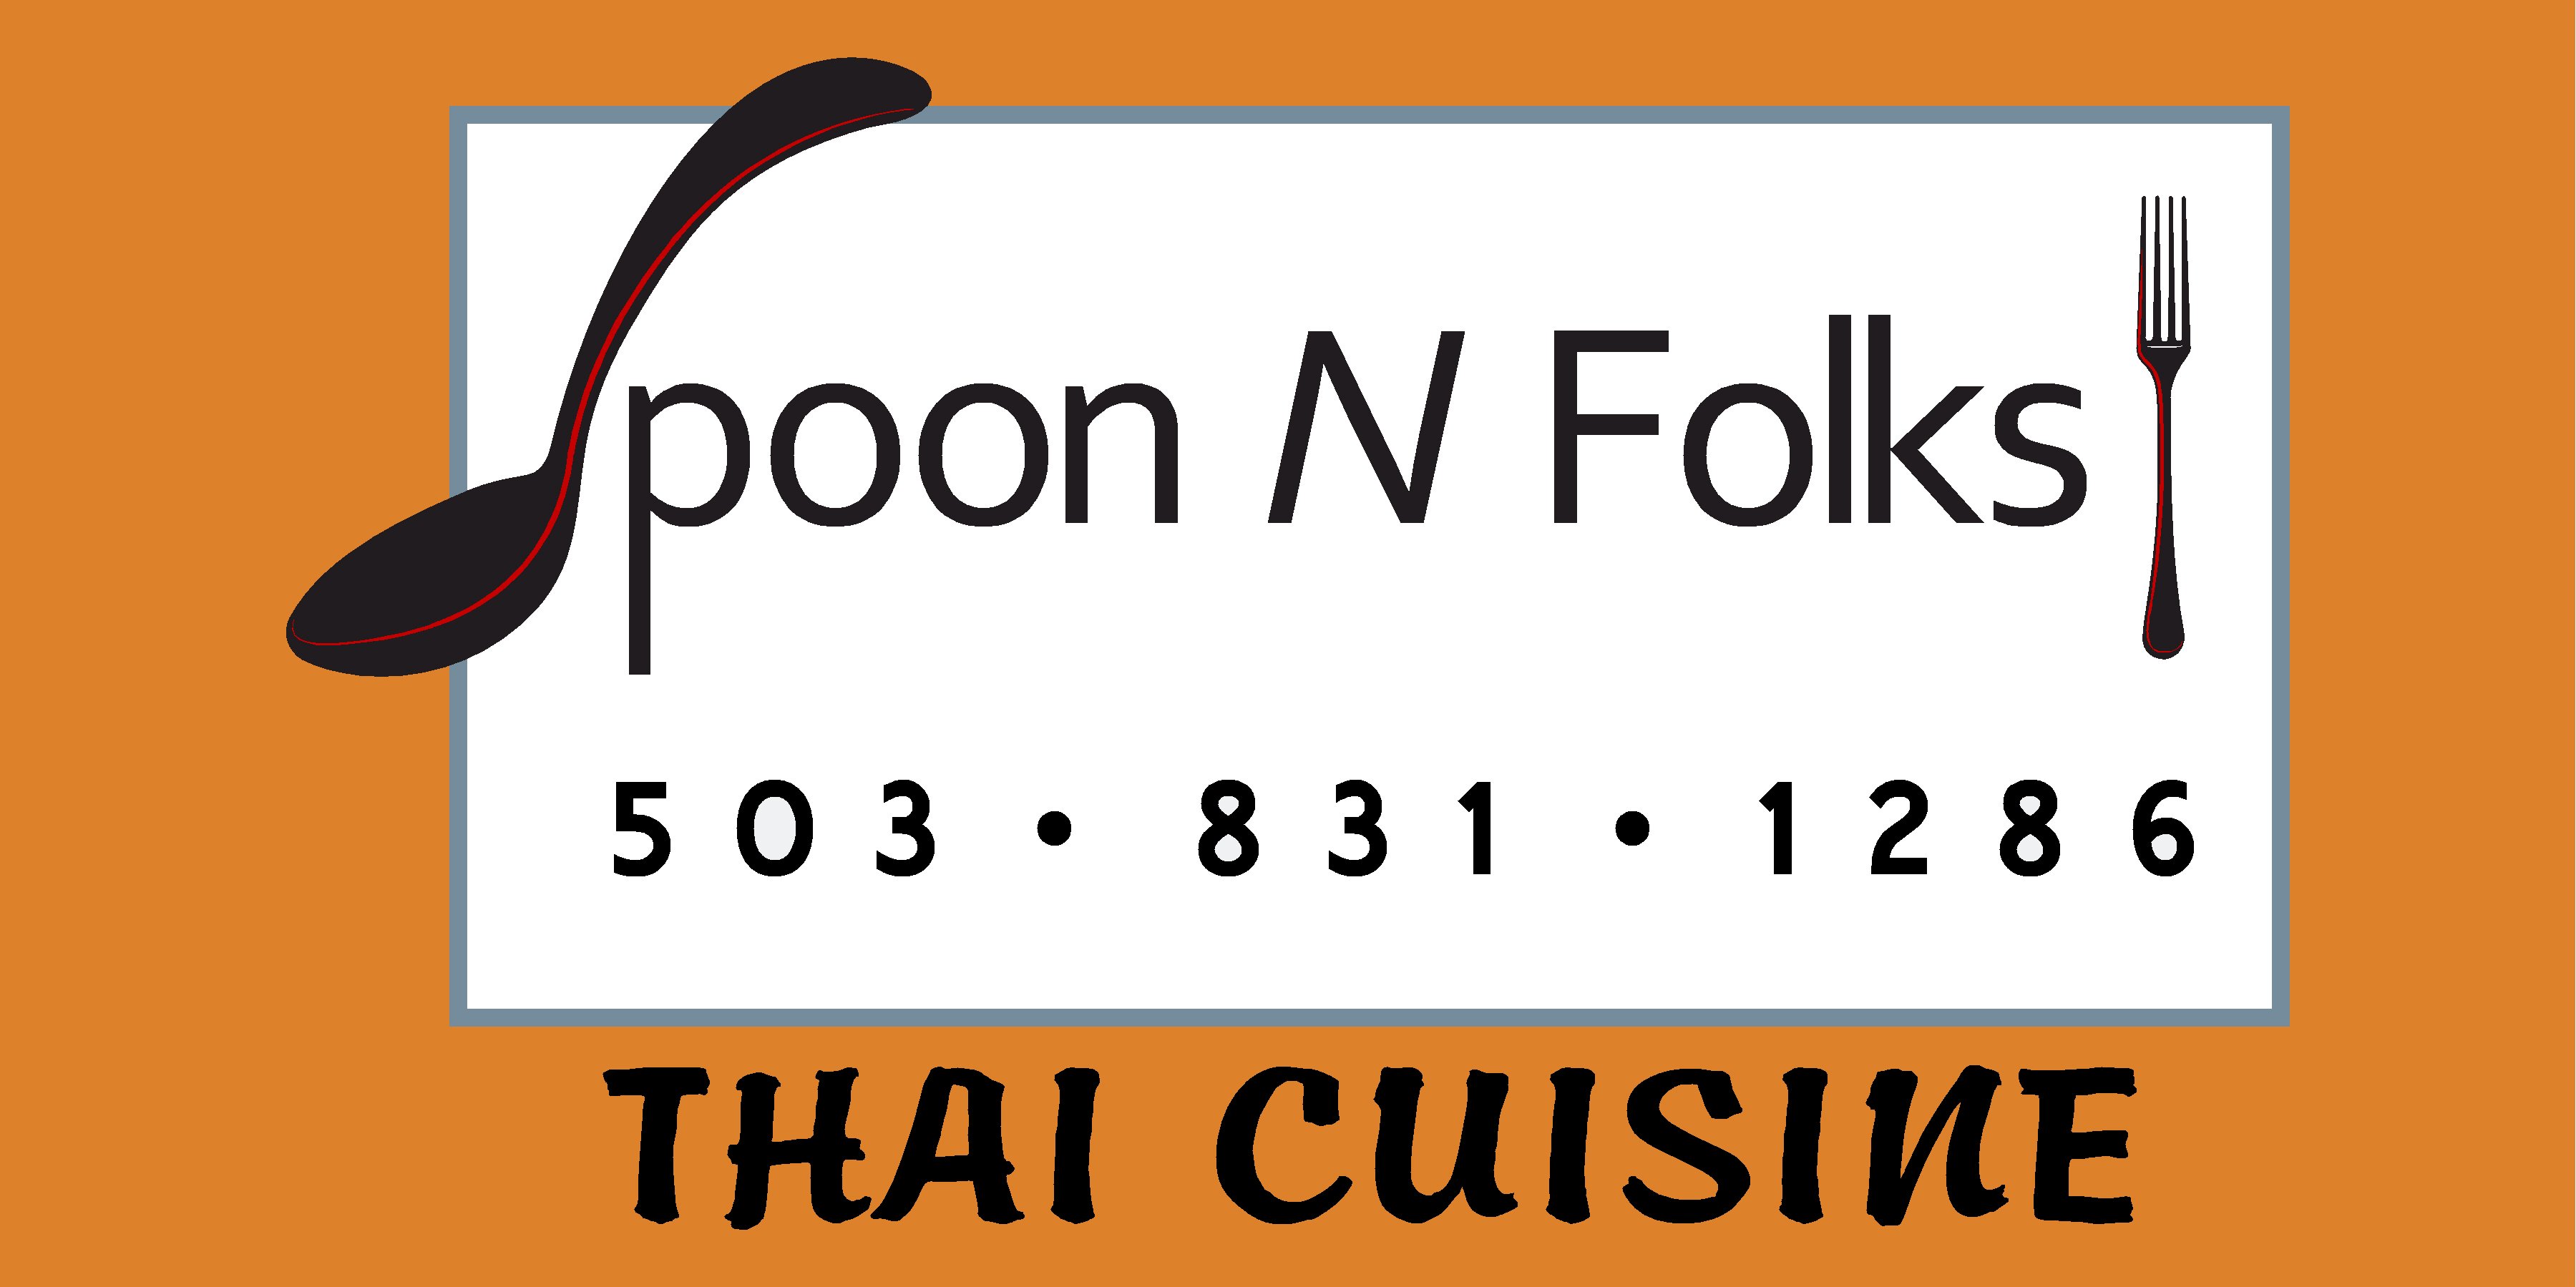 Spoon N Folks Thai Cuisine - Dallas